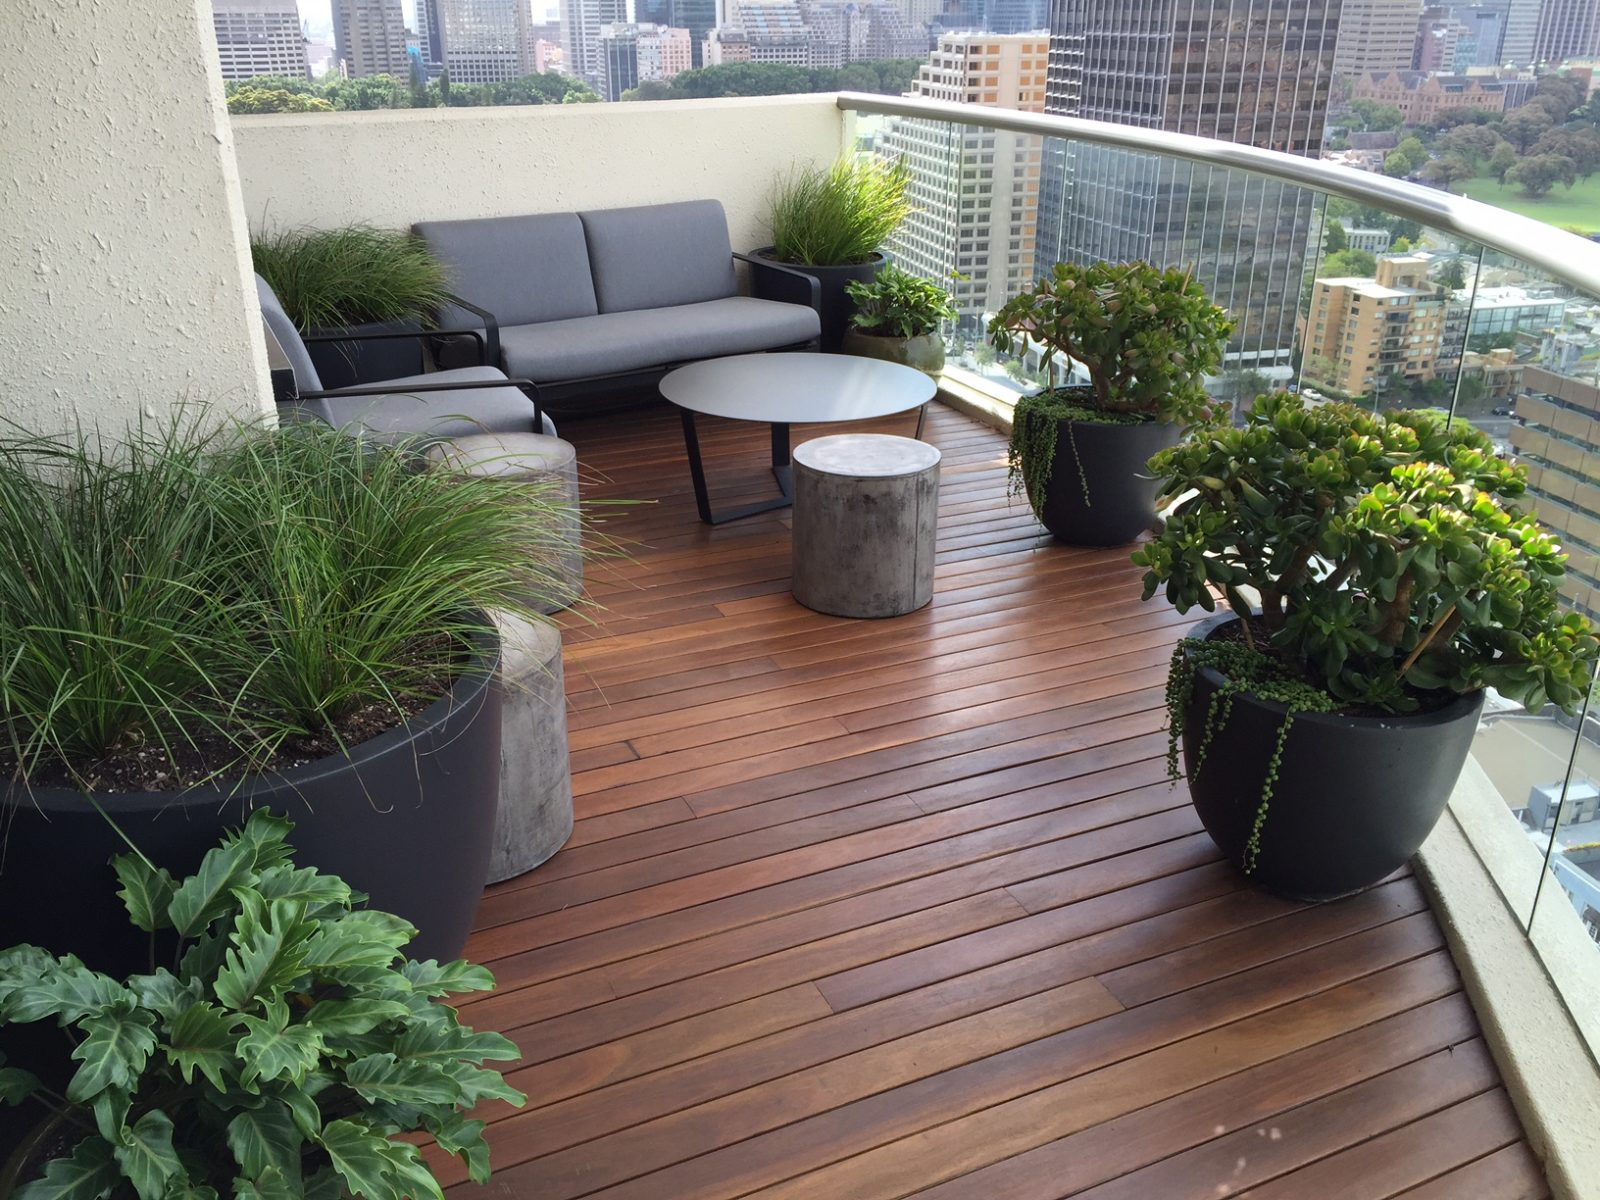 Urban oasis balcony gardens that prove green is always in style - Enclosed balcony design ideas oases of serenity ...